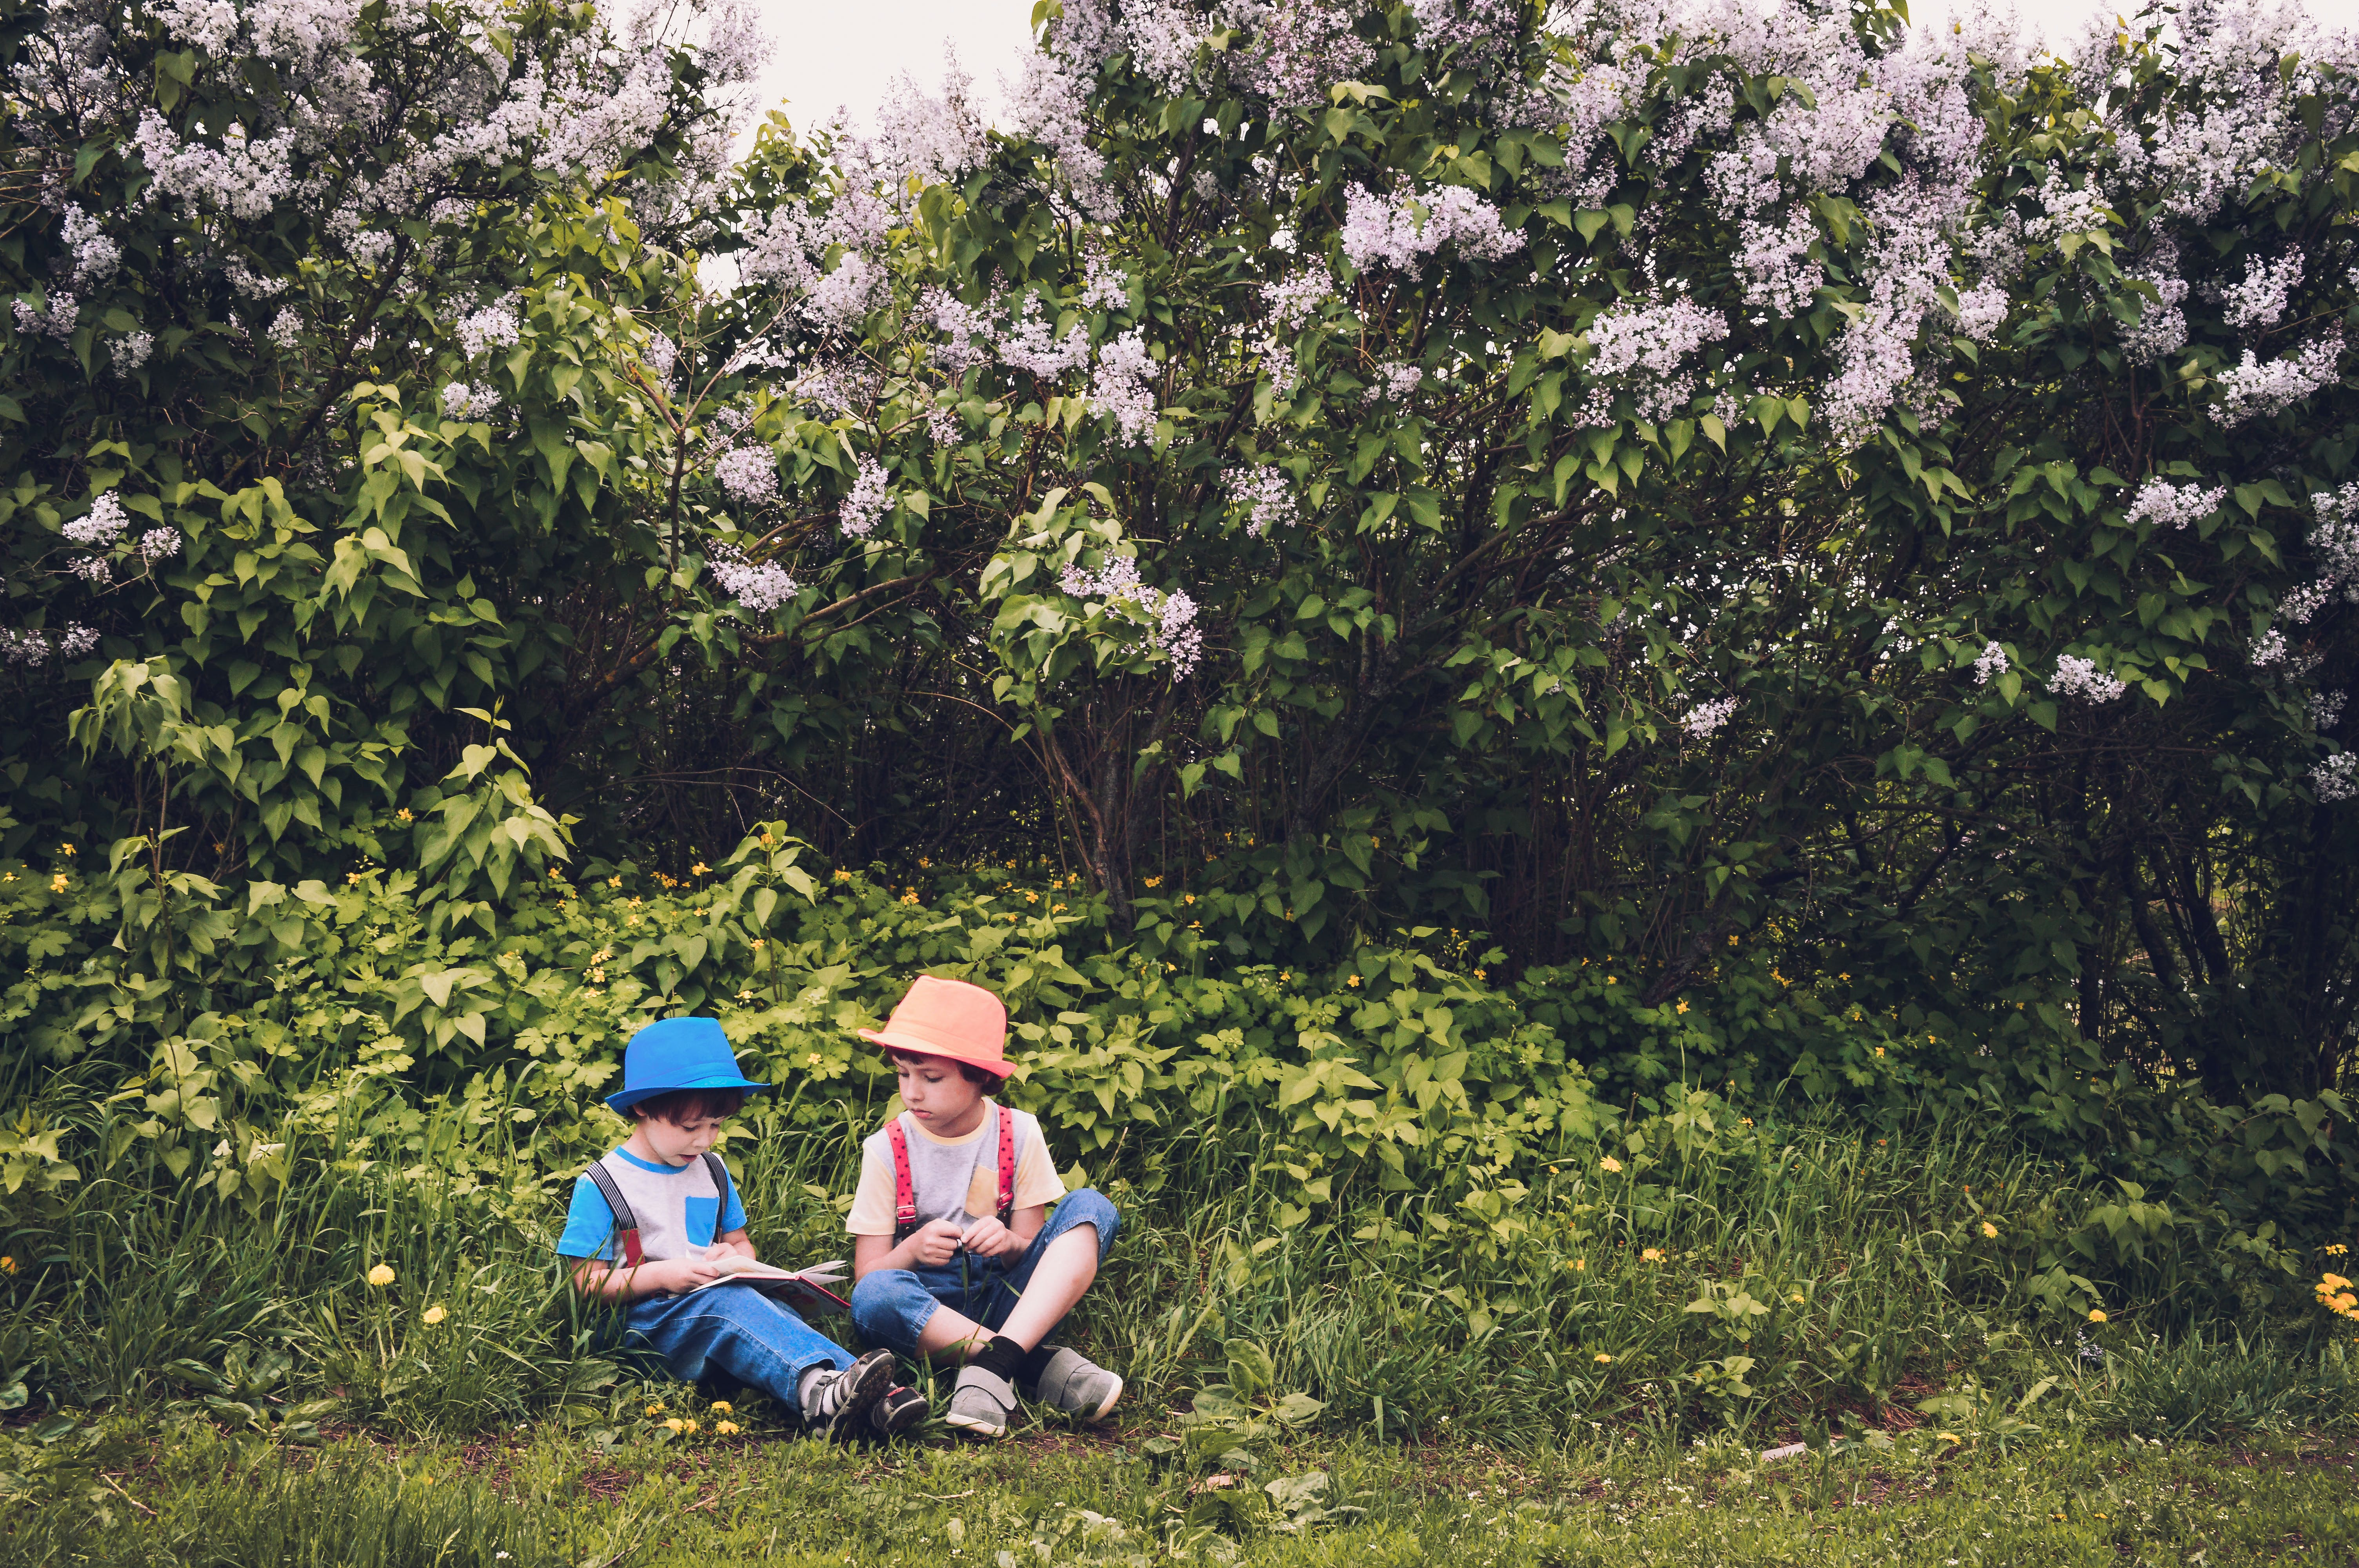 Boy in White and Blue Shirt and Blue Jeans Sitting in Green Grass